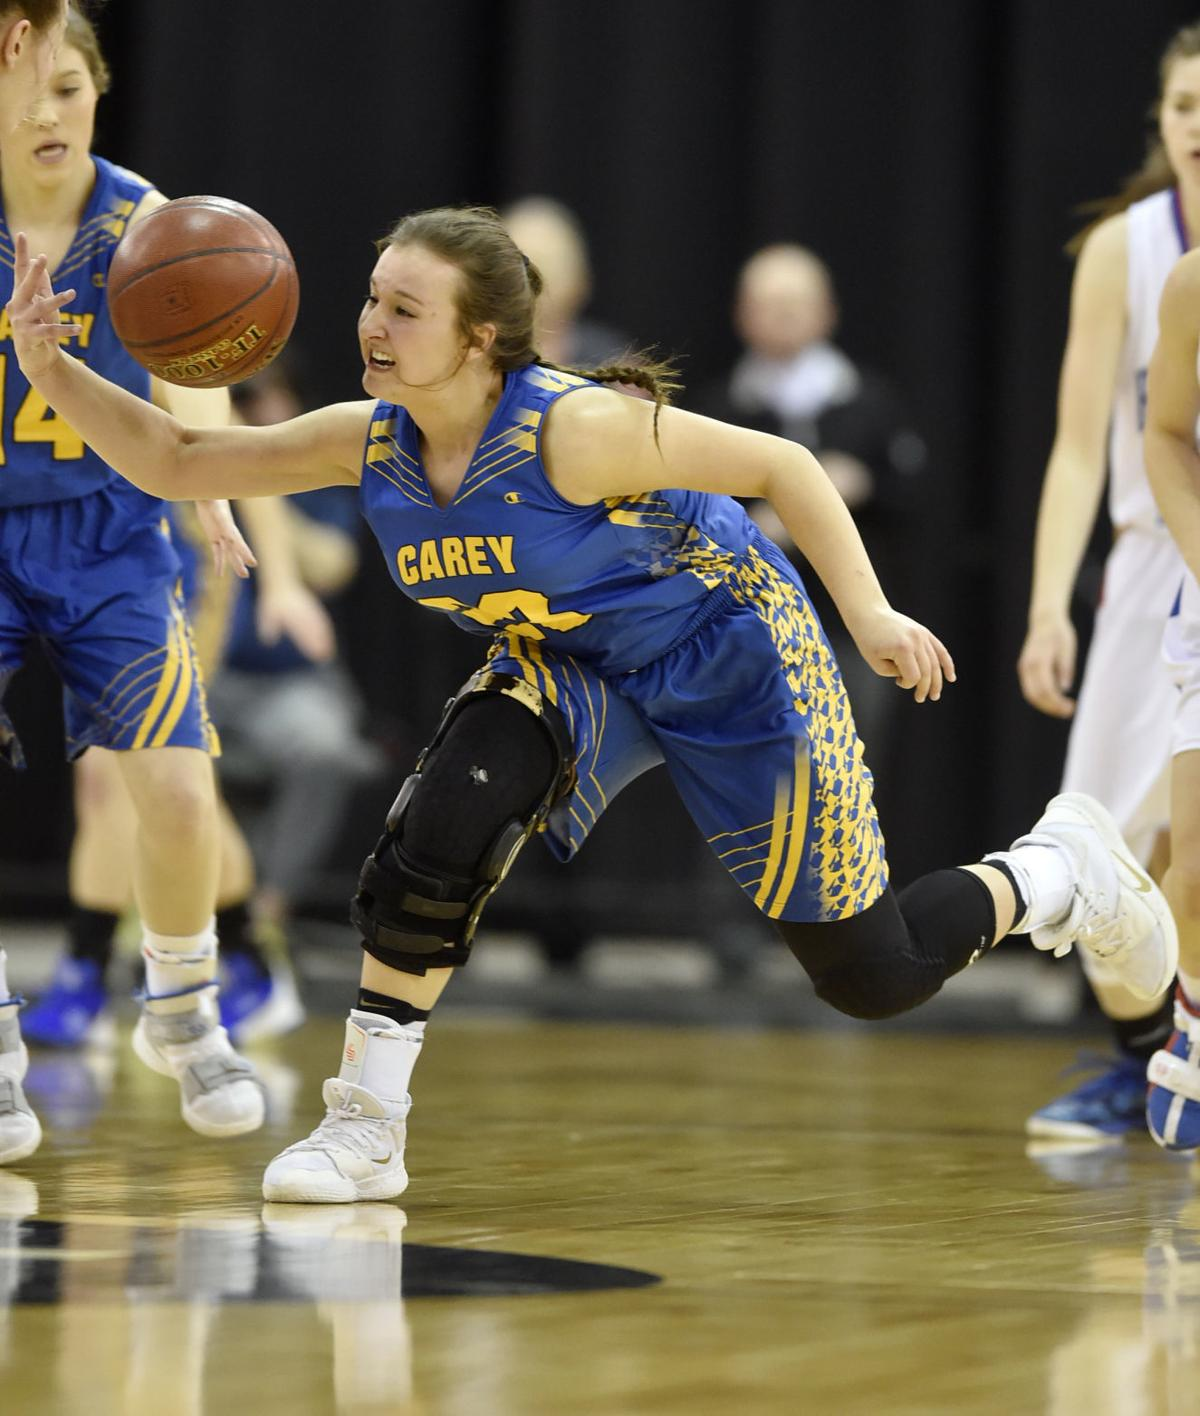 Girls State Basketball - Carey Vs. Rockland